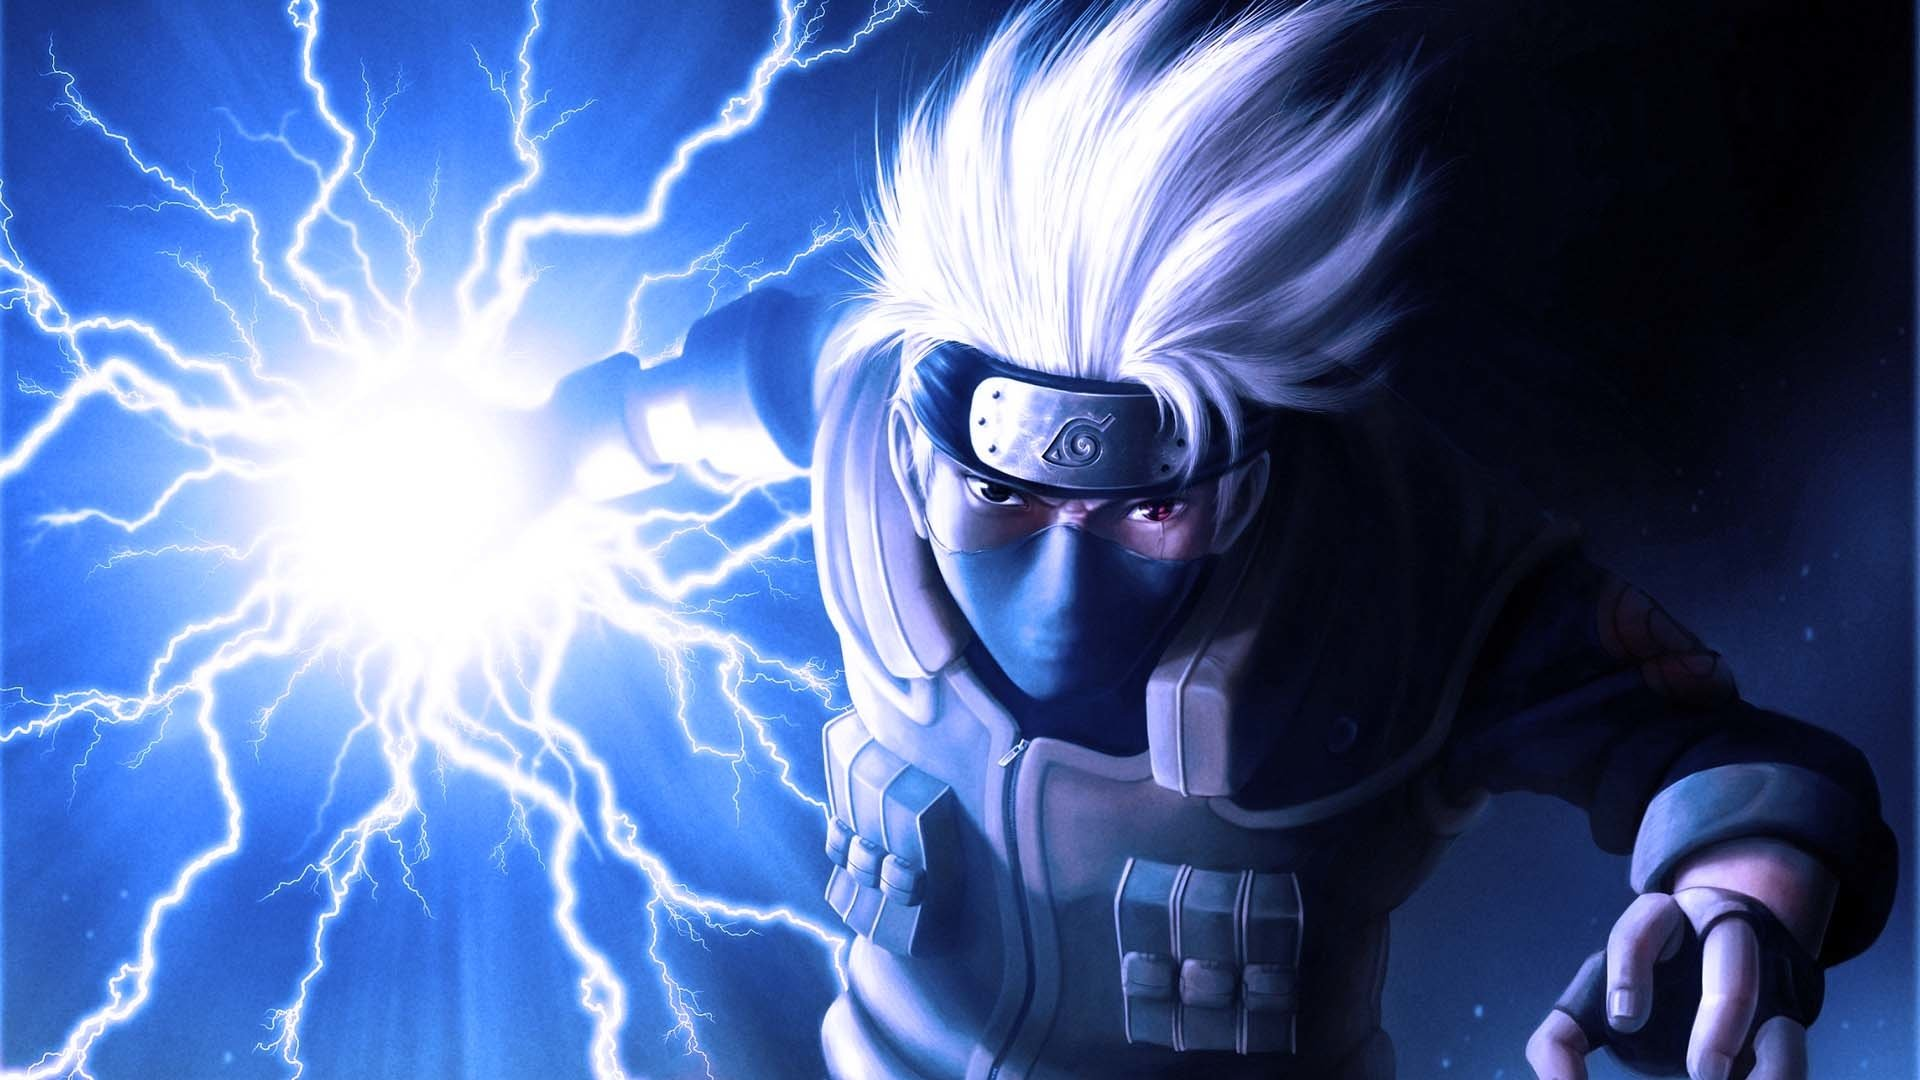 Kakashi chidori full hd fond d 39 cran and arri re plan for Fond ecran naruto